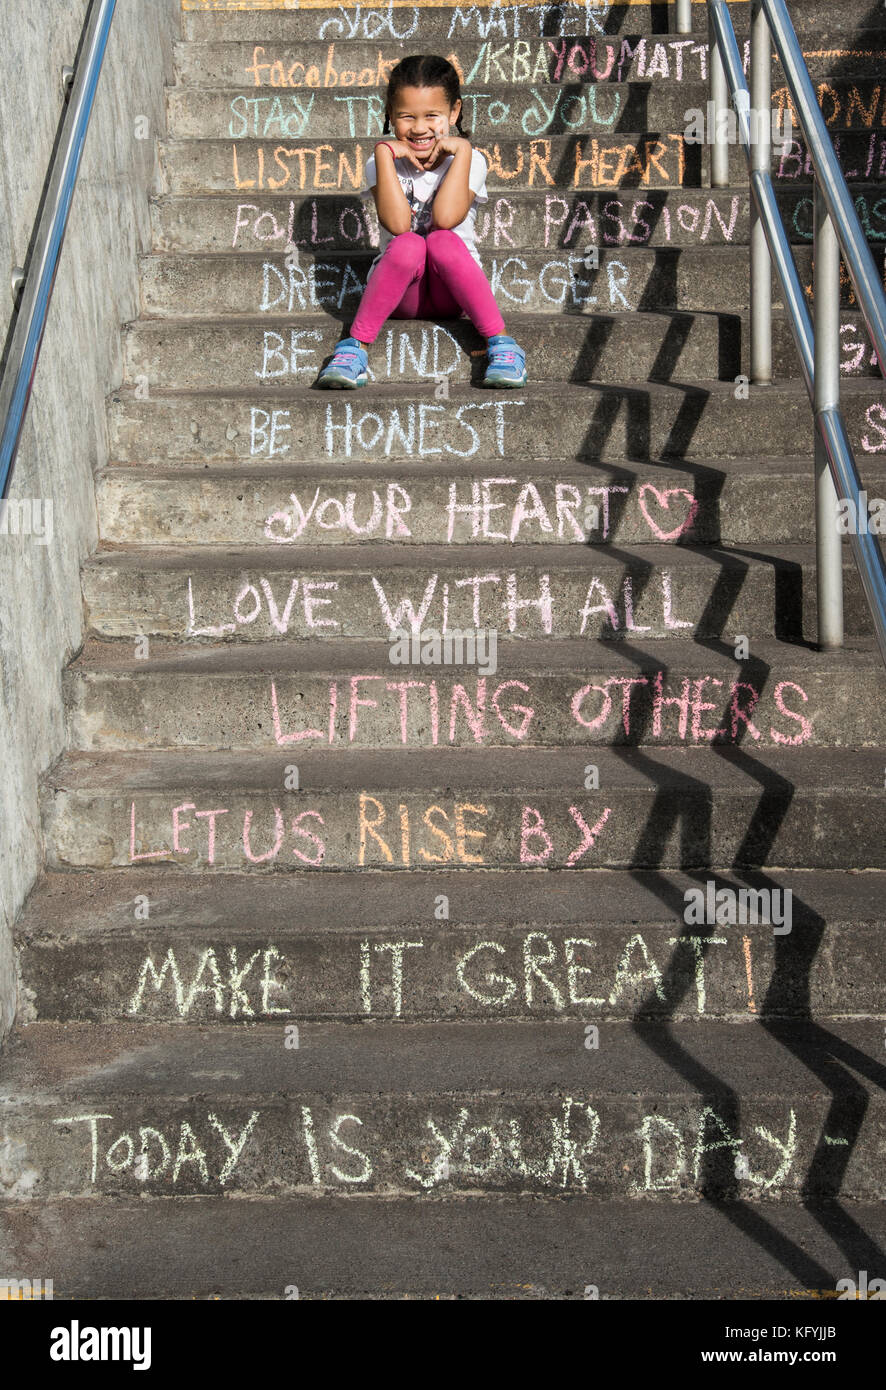 Duluth, Minnesota. Five year old bi-racial girl sitting on the stairs of inspiration. - Stock Image